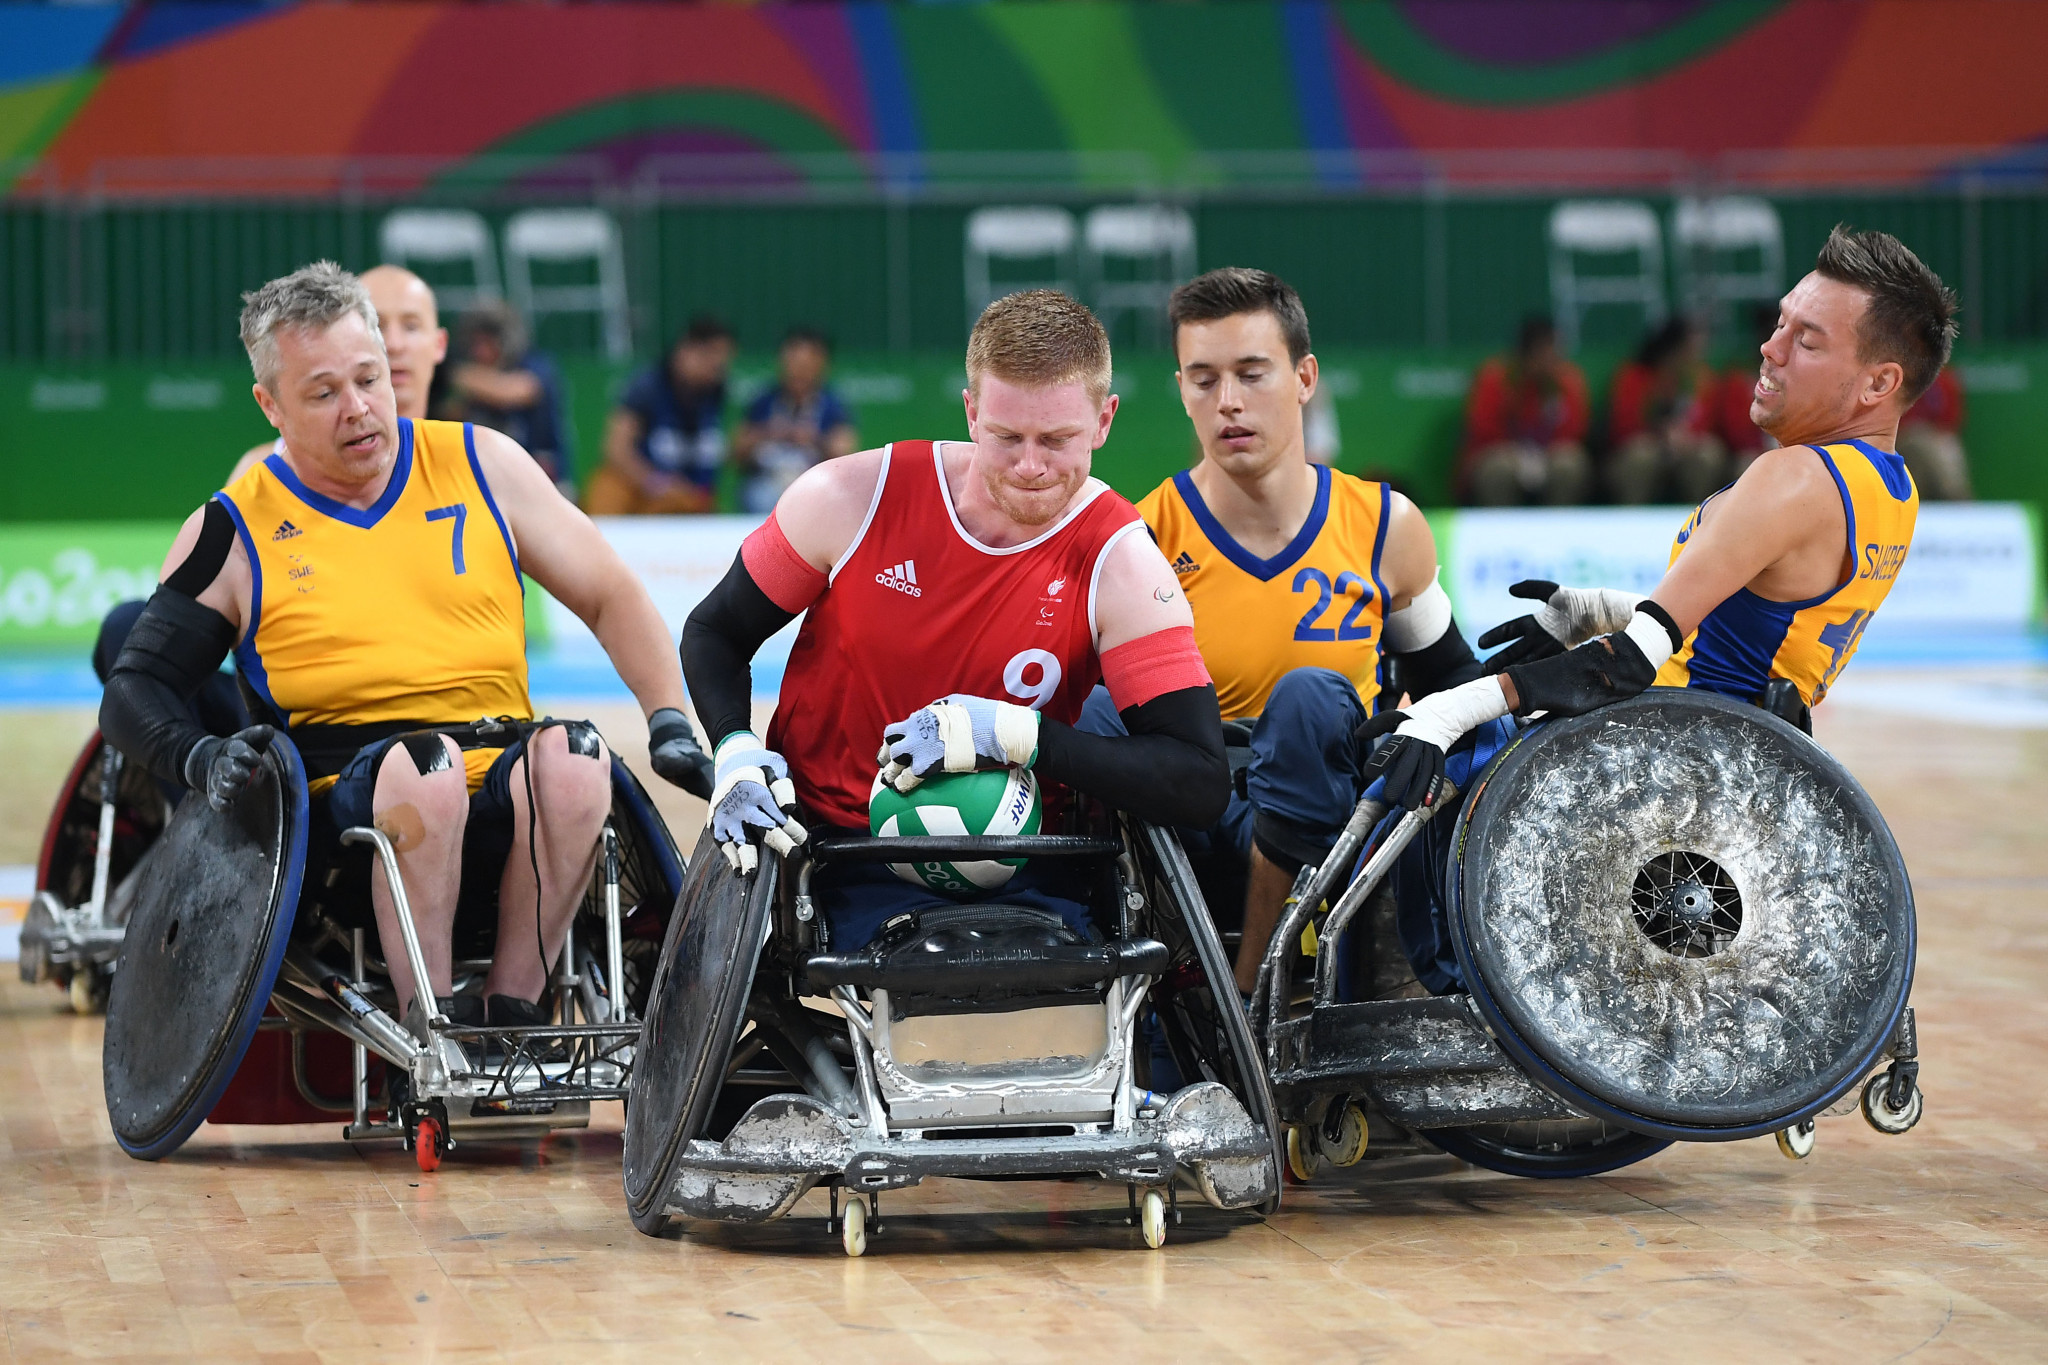 Great Britain's wheelchair rugby team had their funding cut after finishing fifth at Rio 2016 but have continued to move up the world rankings in the Tokyo 2020 build up ©Getty Images